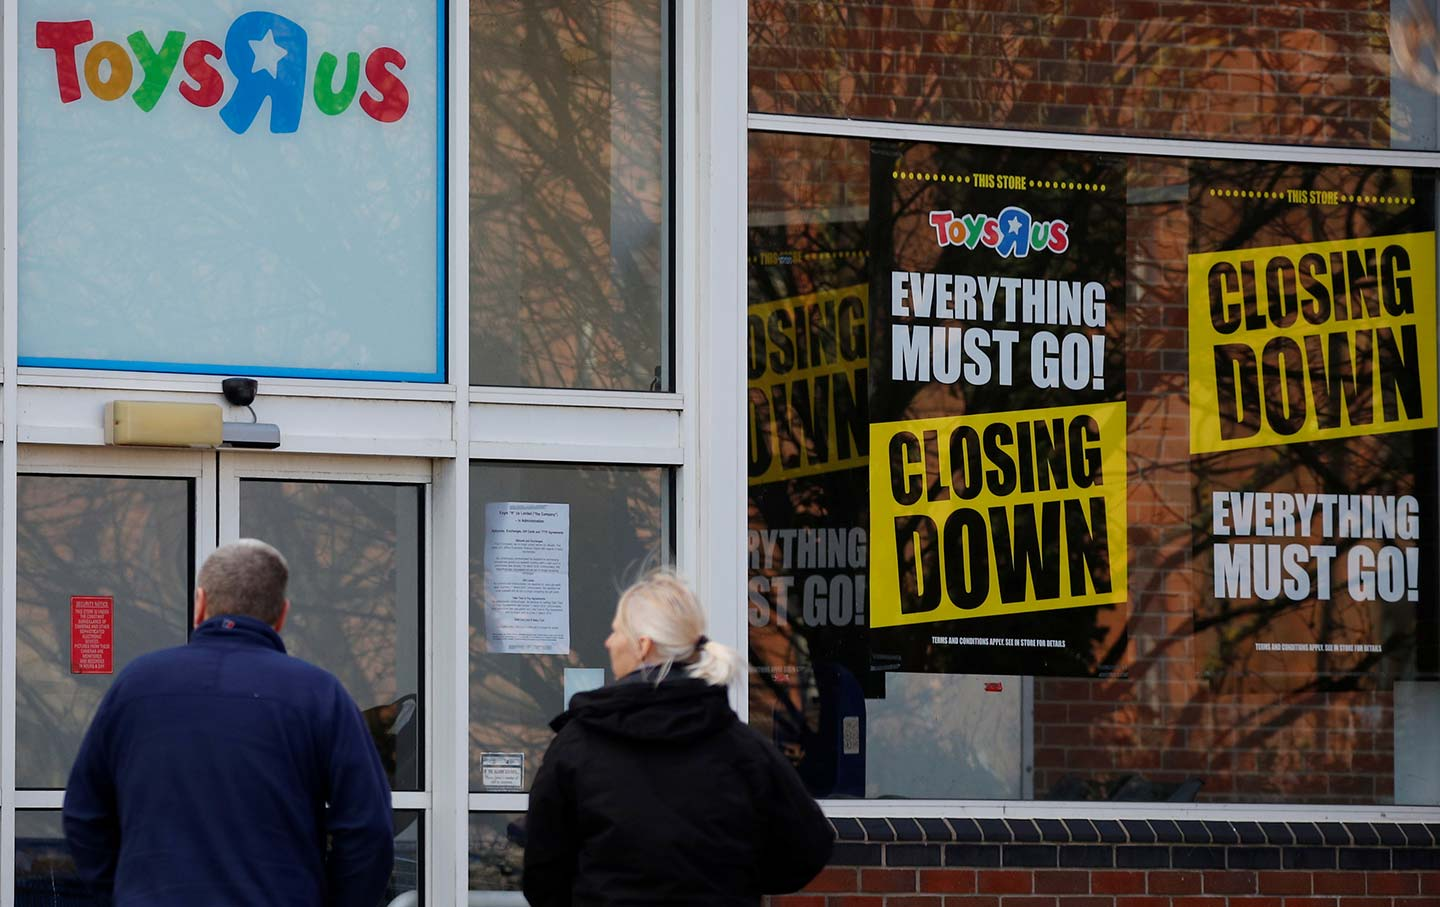 Toys R Us announces it will close all stores in Britain